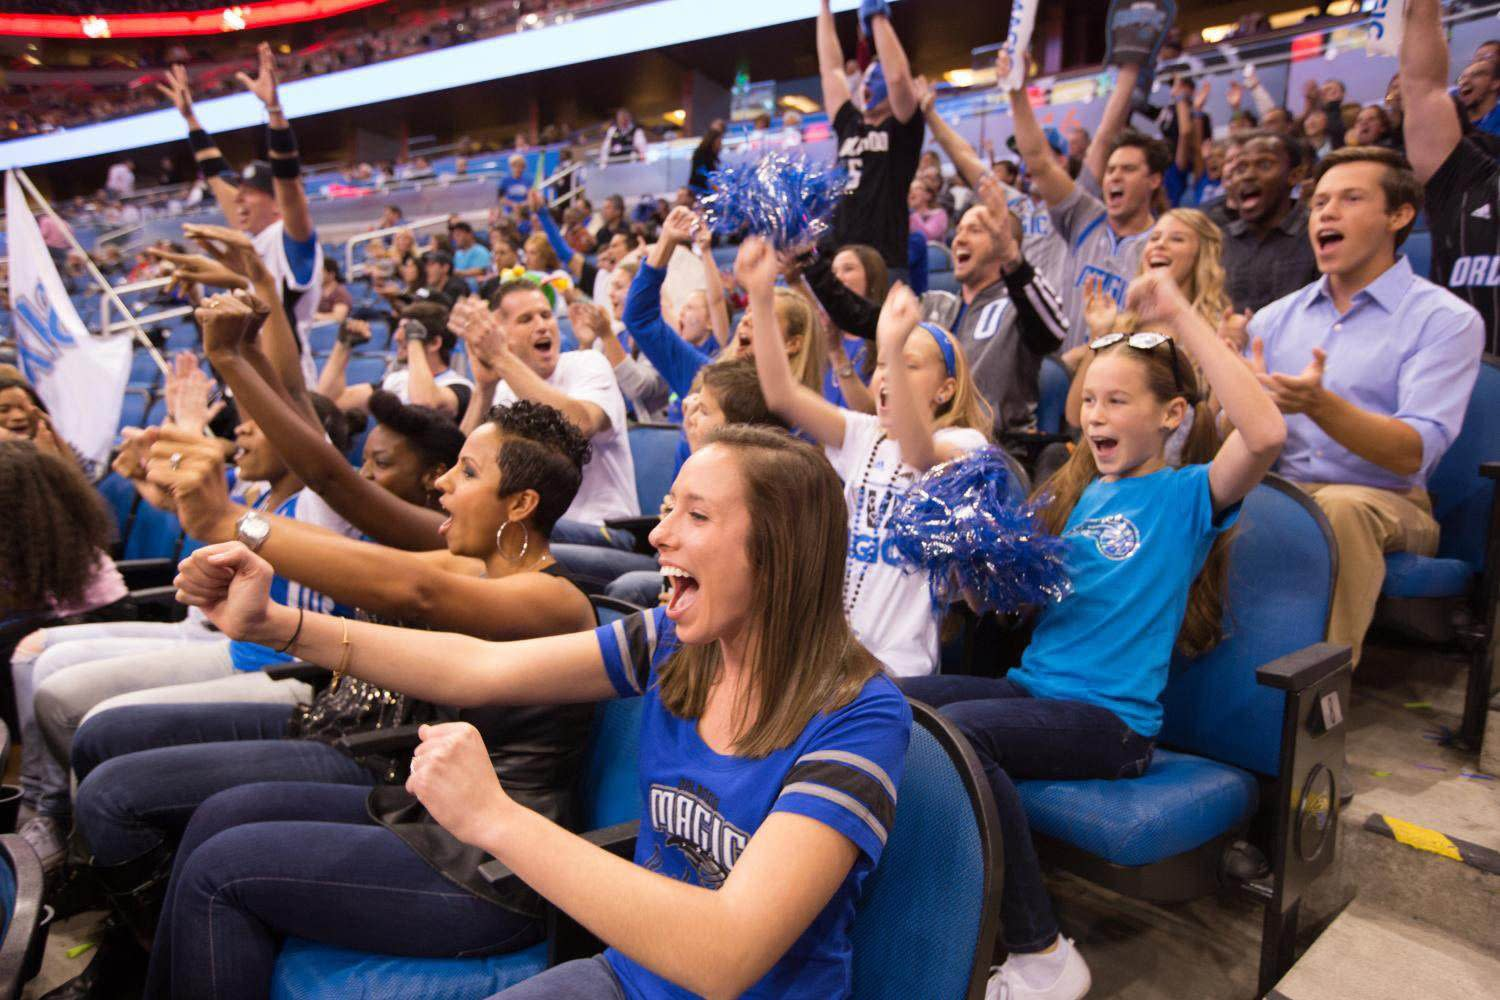 Catch Orlando Magic Games at Downtown Orlando's Amway Center